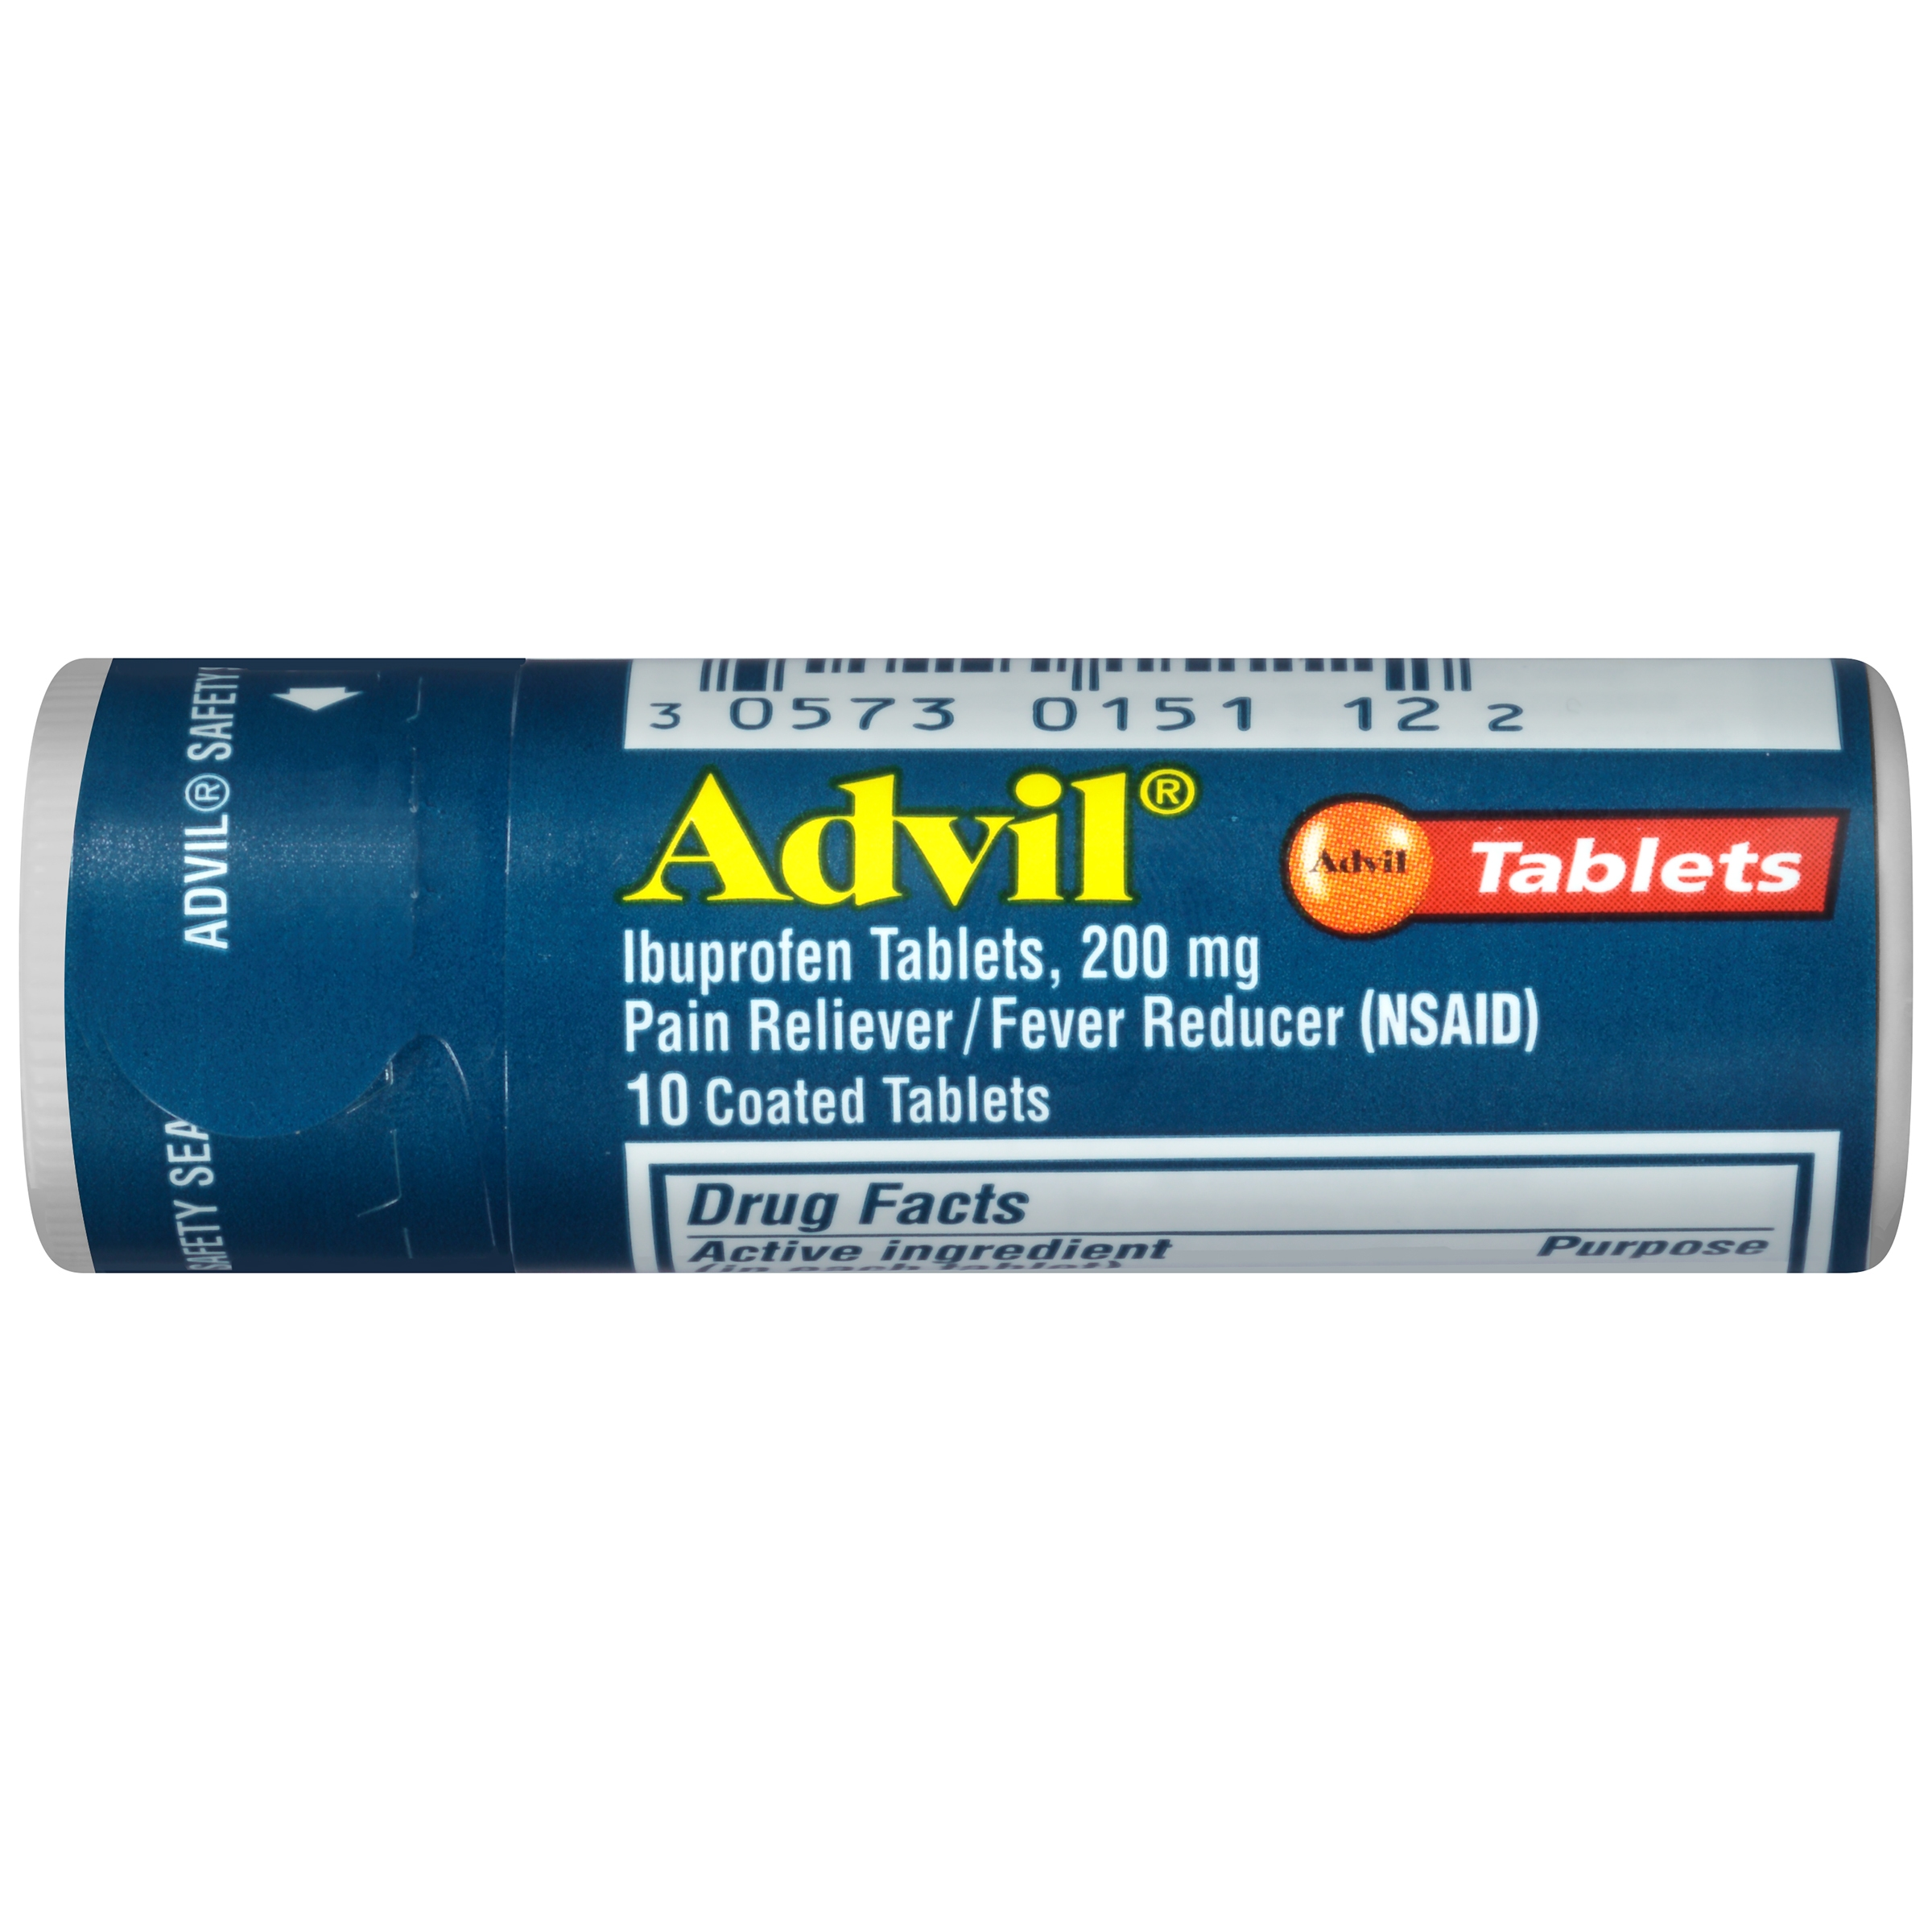 Advil Pain Reliever/Fever Reducer (NSAID) Coated Tablets, 10 count